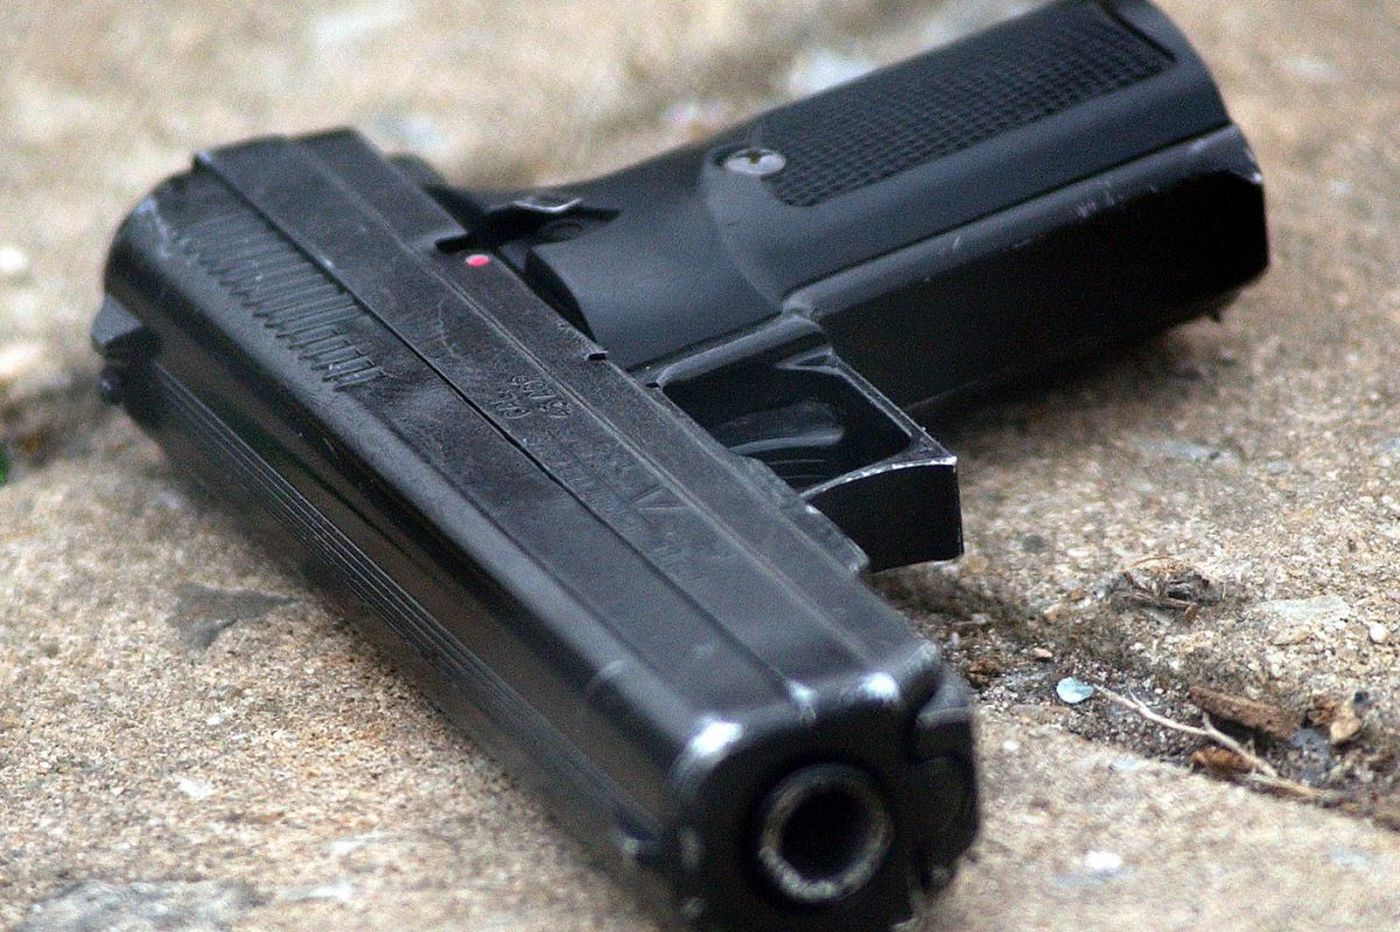 Atlantic City man shoots self, survives, gets charged